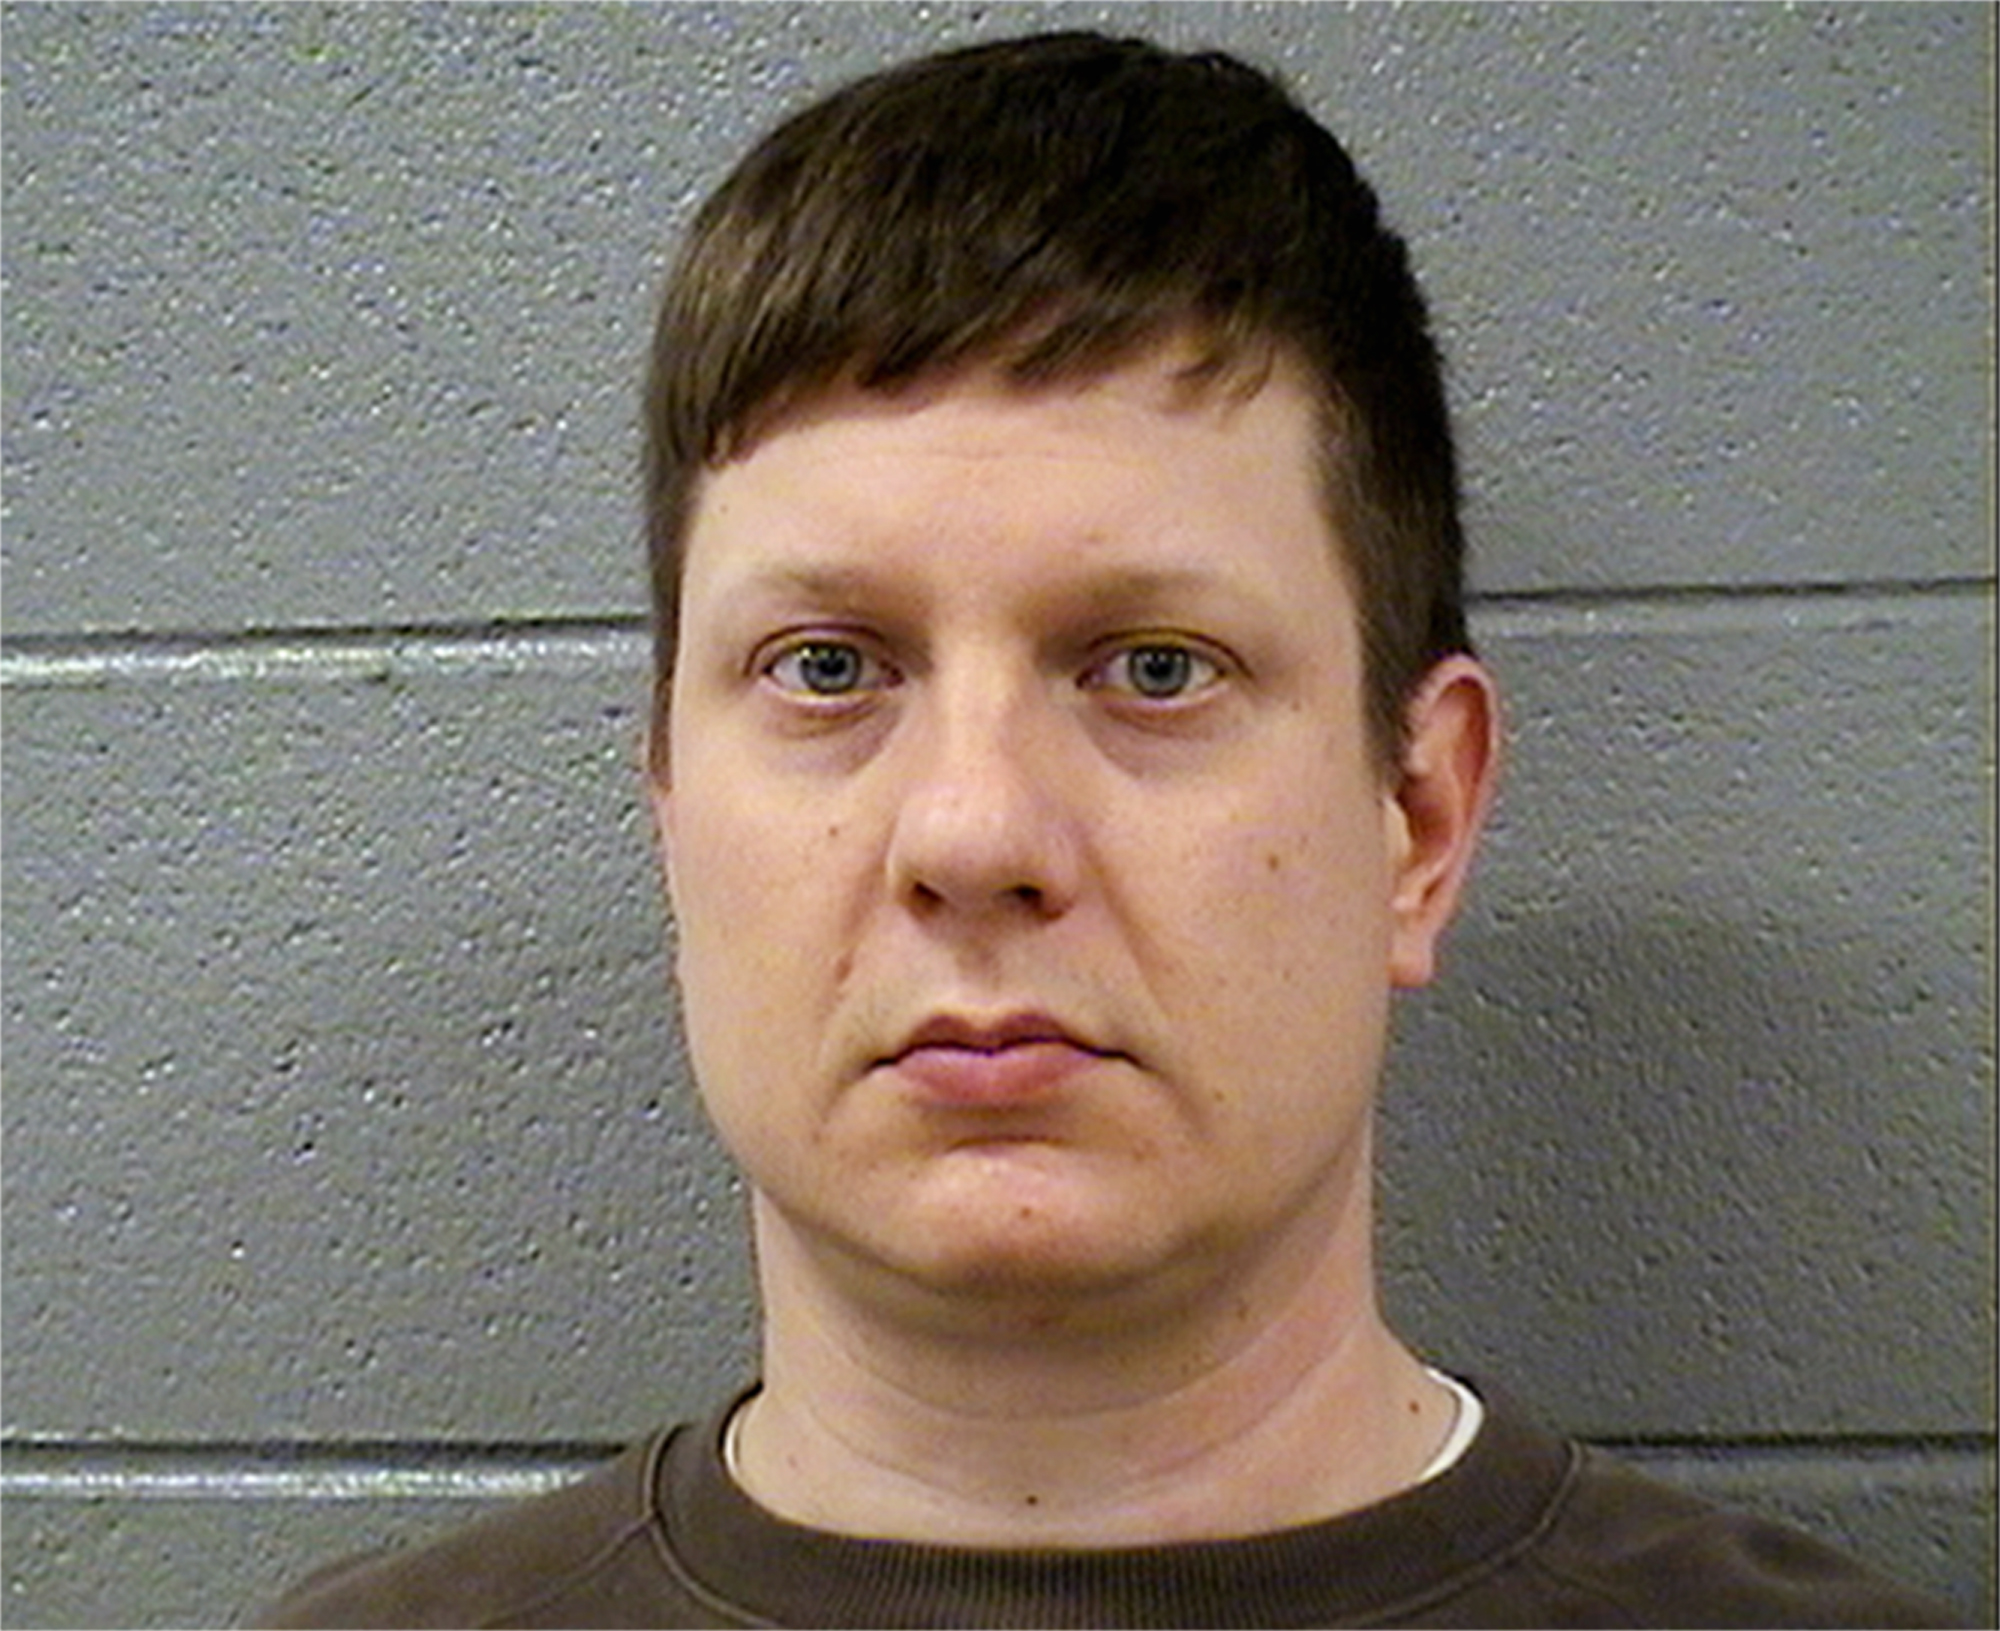 This Tuesday, Nov. 24, 2015 photo released by the Cook County Sheriff's Office shows Chicago police Officer Jason Van Dyke, who was charged Tuesday with first degree murder in the killing of 17-year-old Laquan McDonald on Oct. 20, 2014. (Cook County Sheriff's Office via AP)